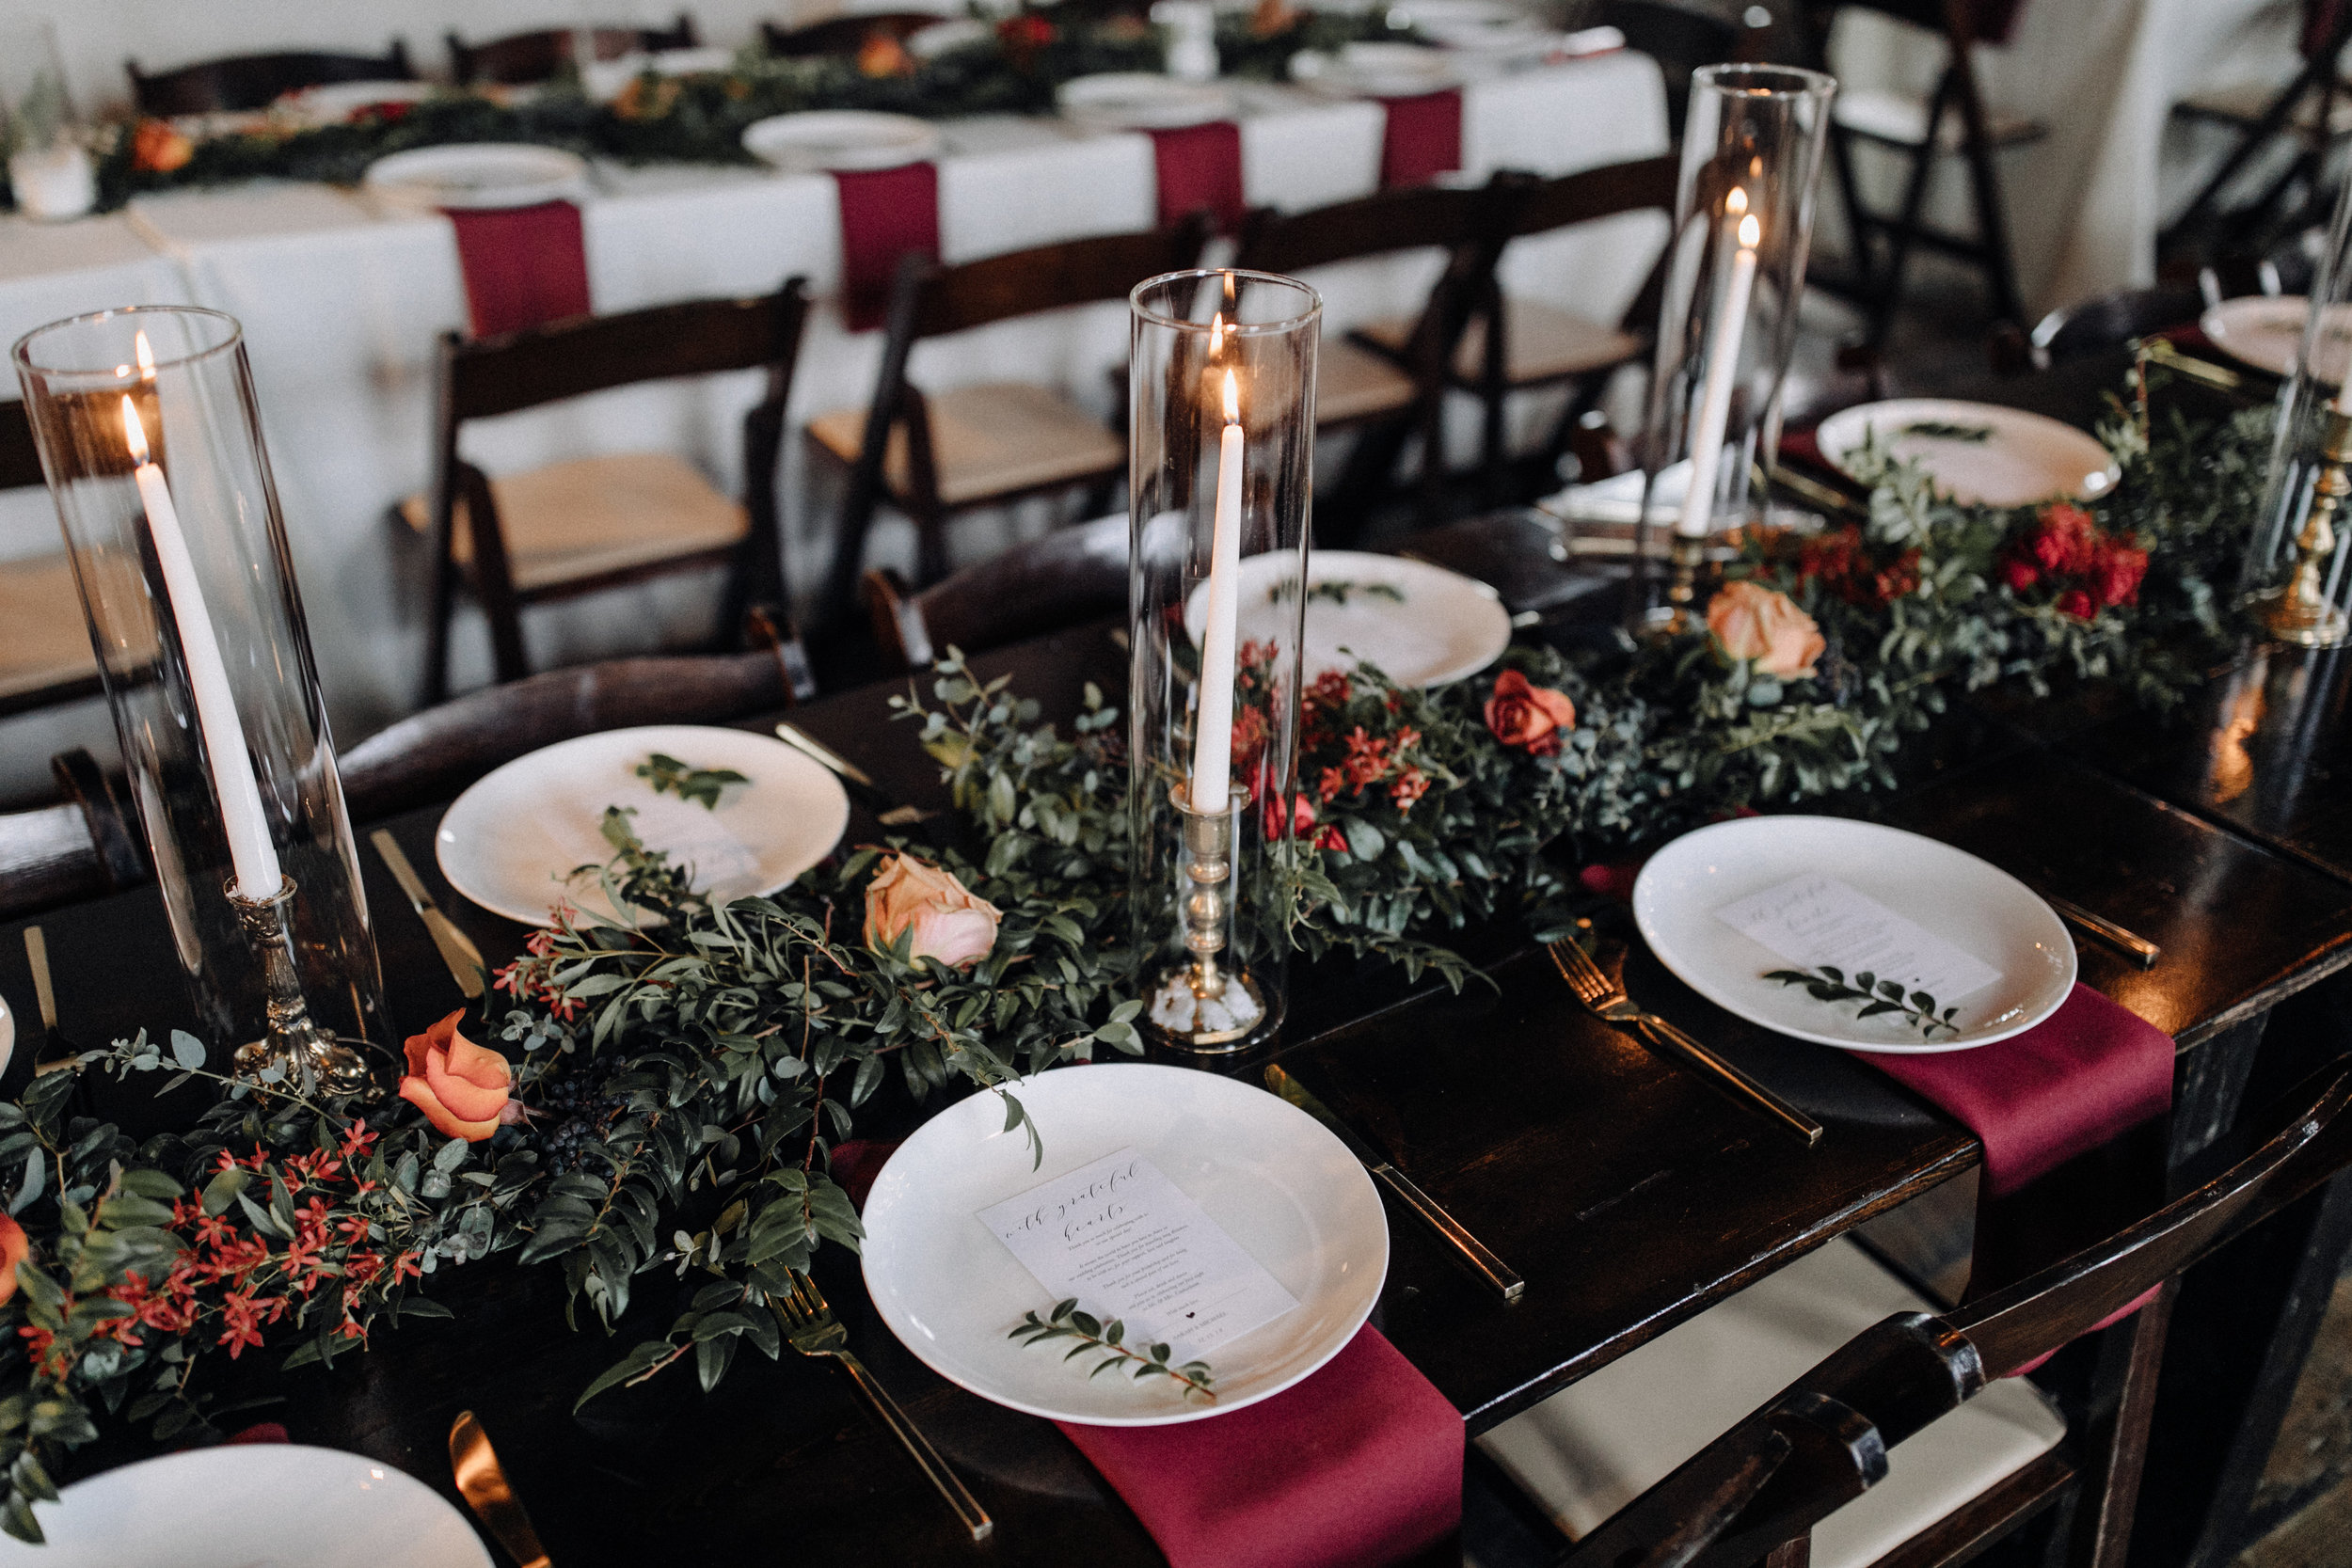 Garland table runner of eucalyptus and natural greenery with copper and burgundy floral accents. Garden-inspired wedding florals at the Cordelle, Nashville.